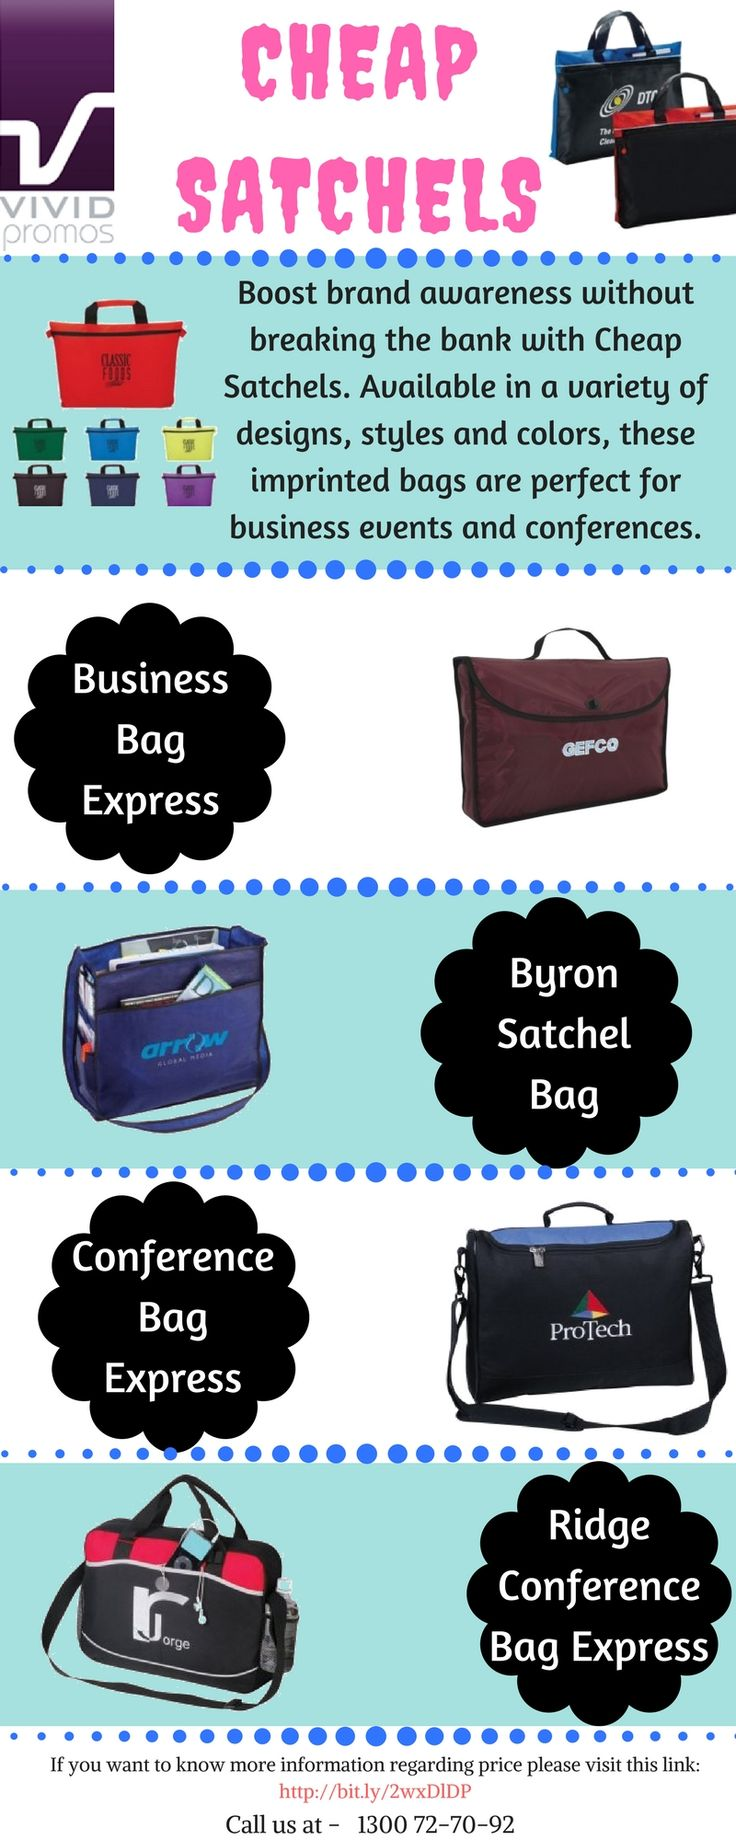 Have a look at this infographic of custom personalised Satchel Bags which has uniquely designed from premium materials to create long lasting and stylish promotional gifts. To get more details: visit: Vividpromotions.com.au